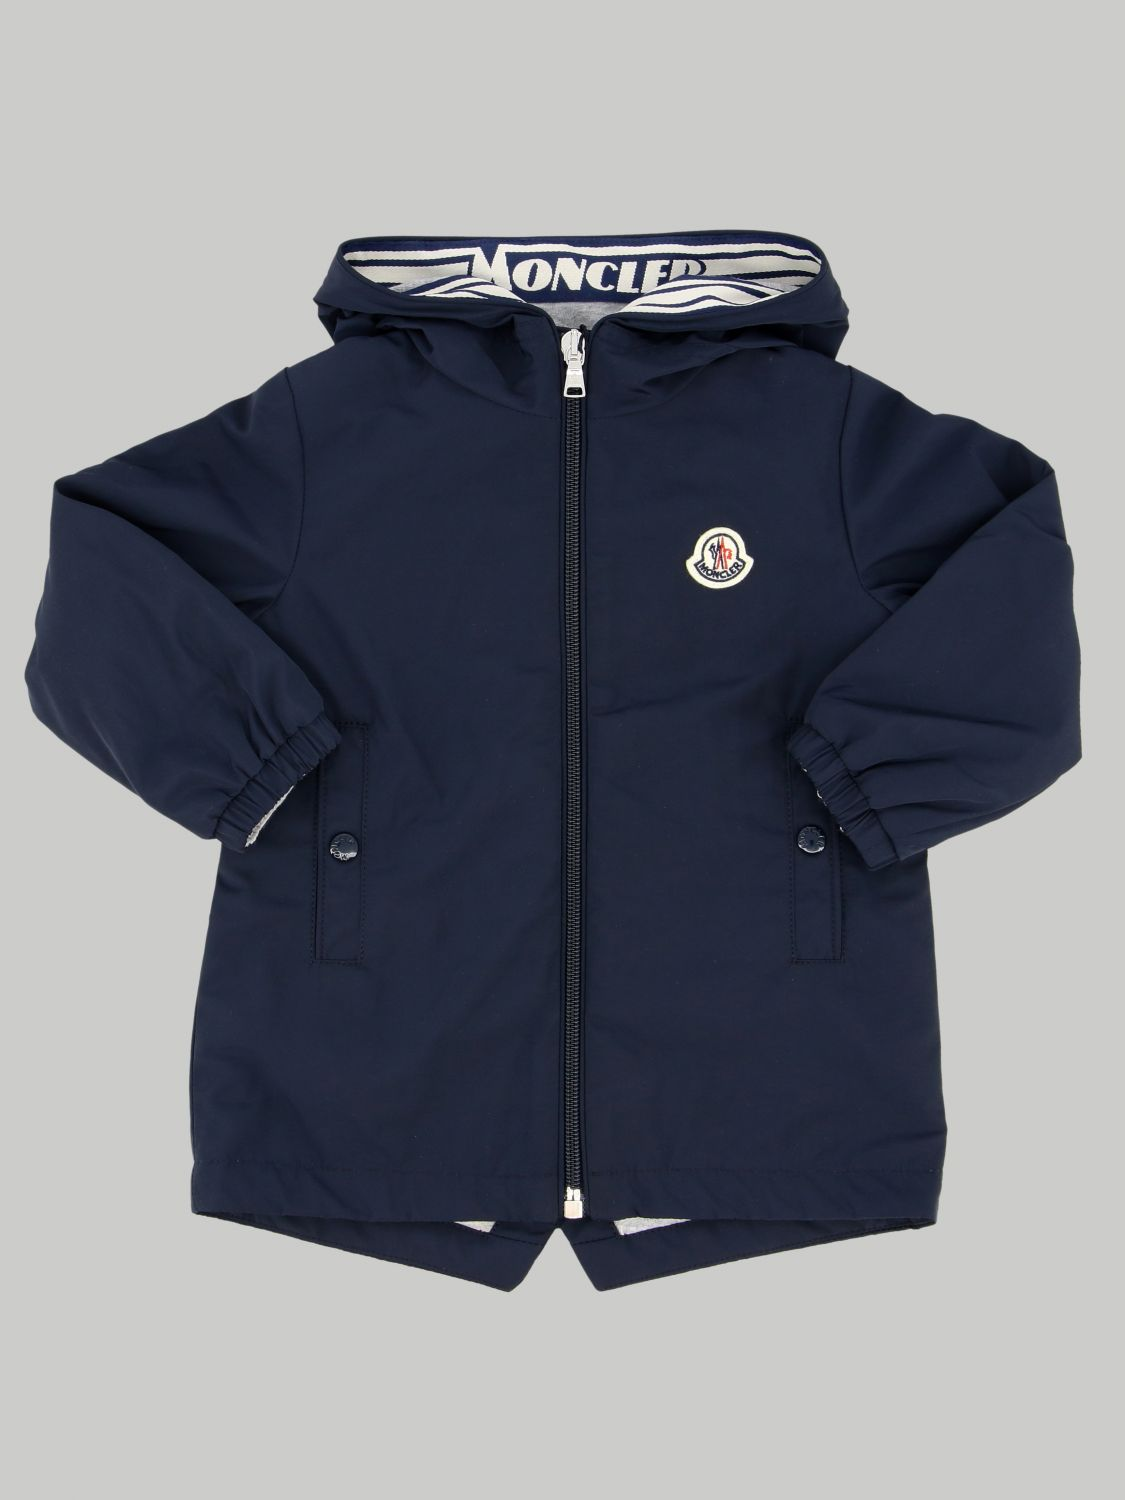 Moncler jacket with hood and logo blue 1